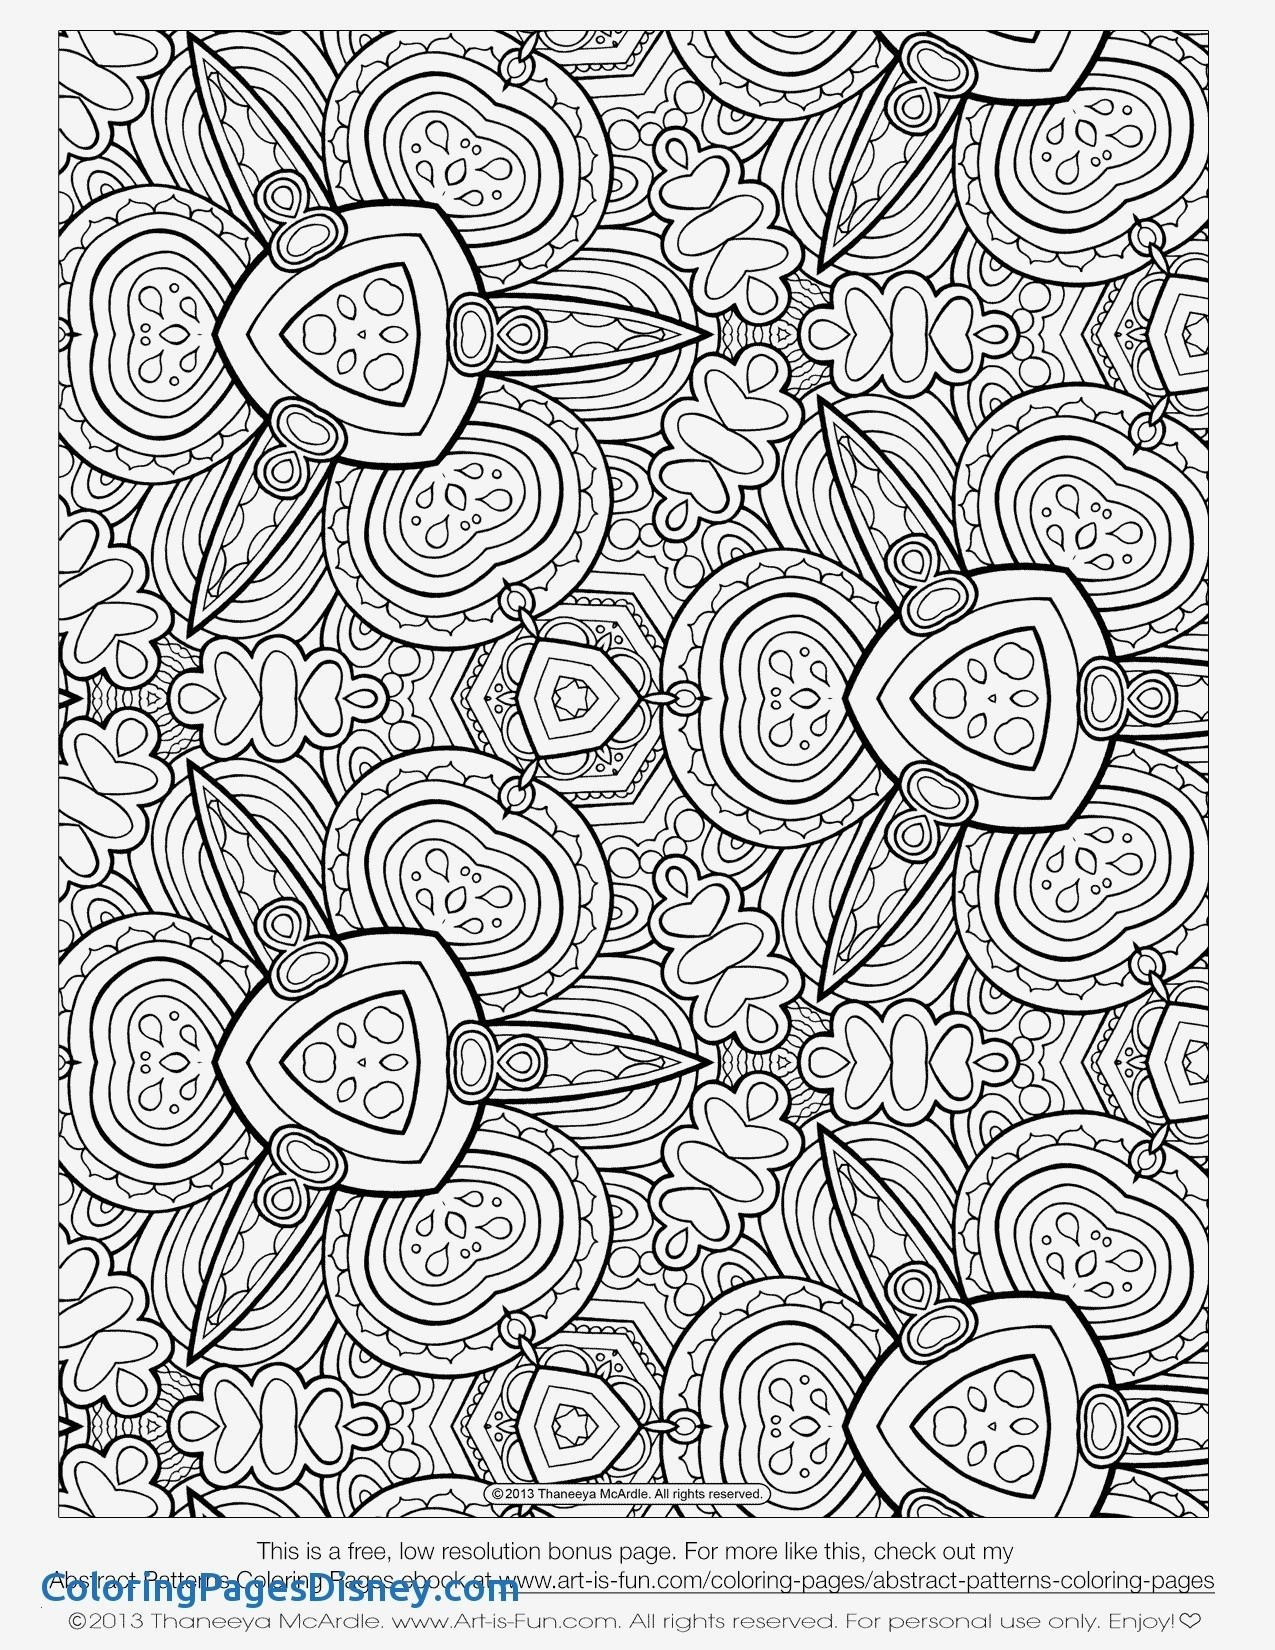 Angel Visits Joseph Coloring Page Angel Visits Joseph Coloring Pages Unique Wall Coloring Pages Best